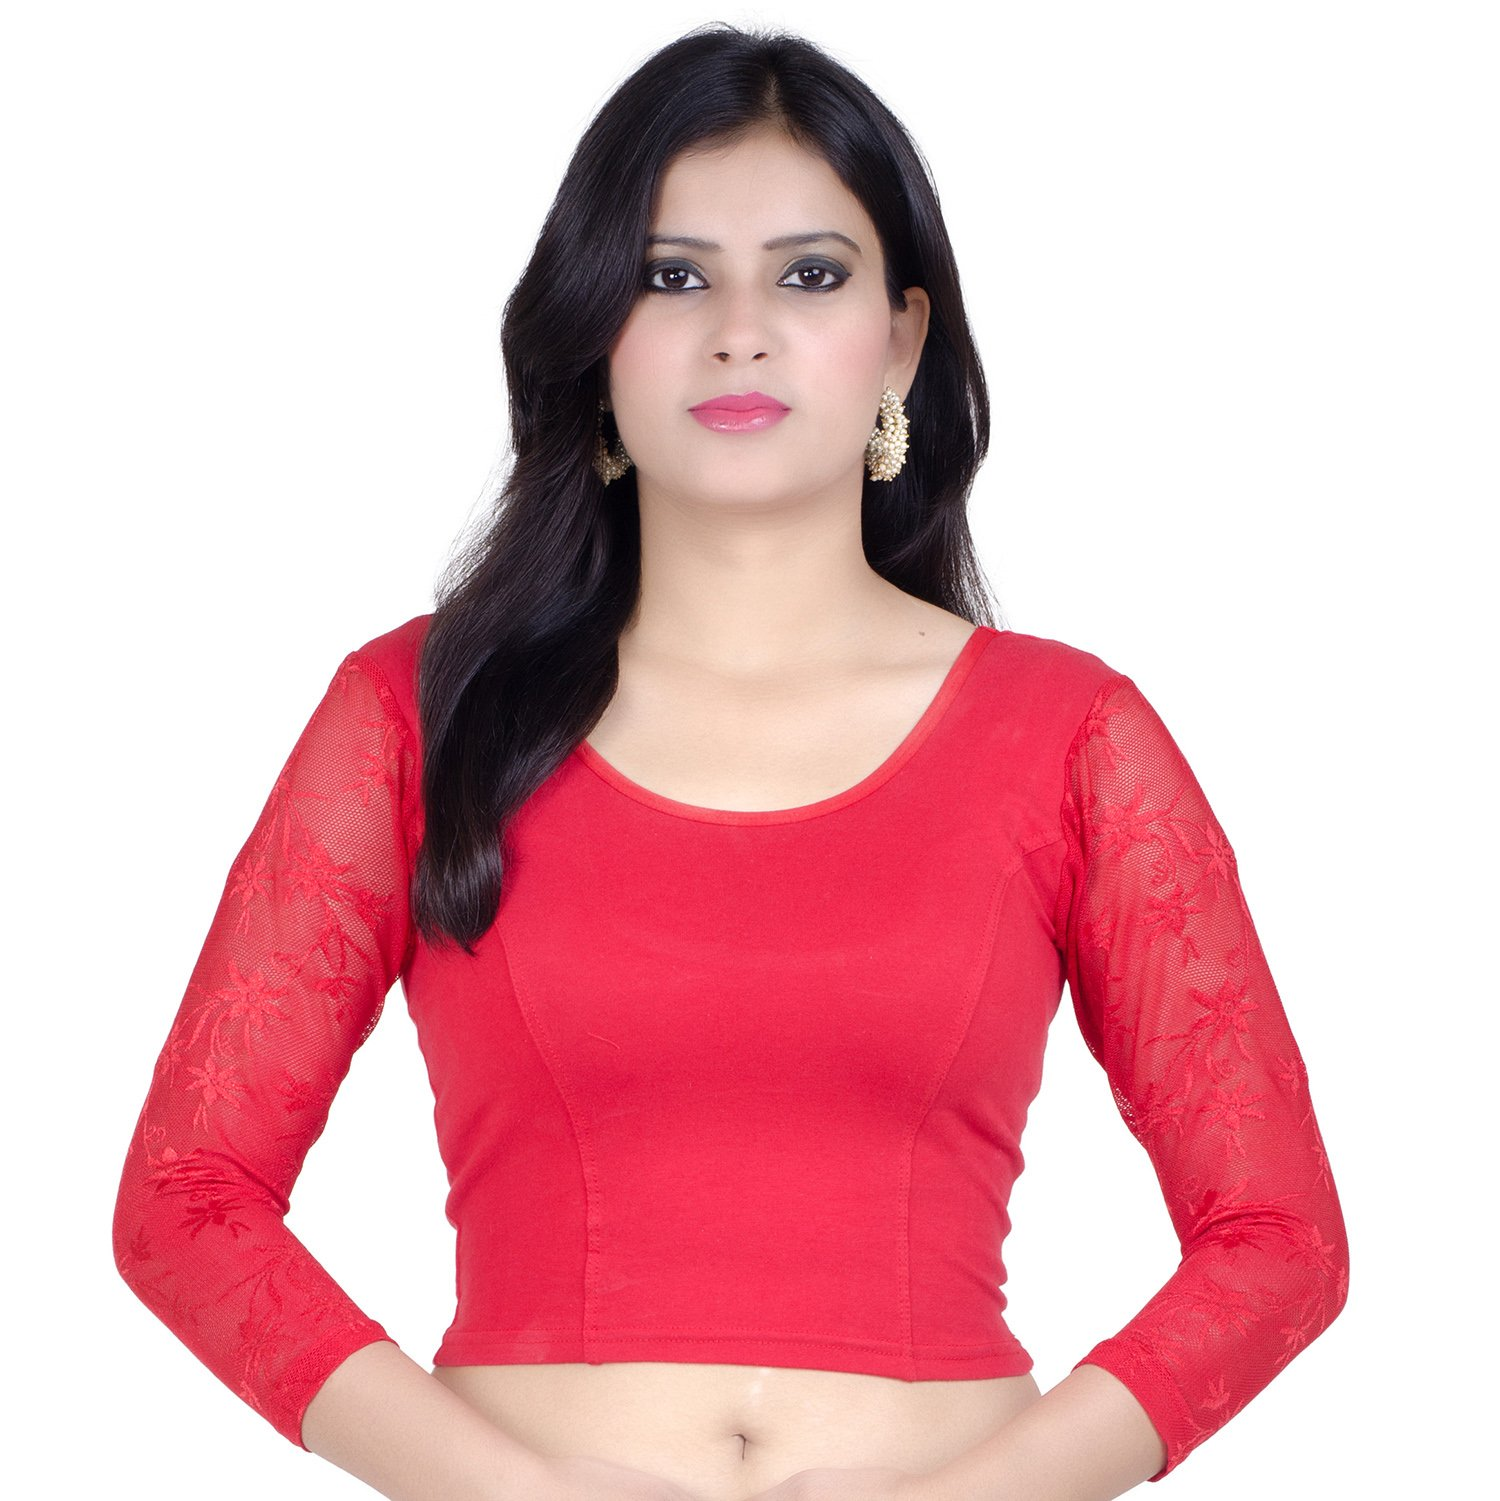 Chandrakala Womens Stretchable Readymade Red Saree Blouse Crop Top Choli (B101),Red-1,Free Size